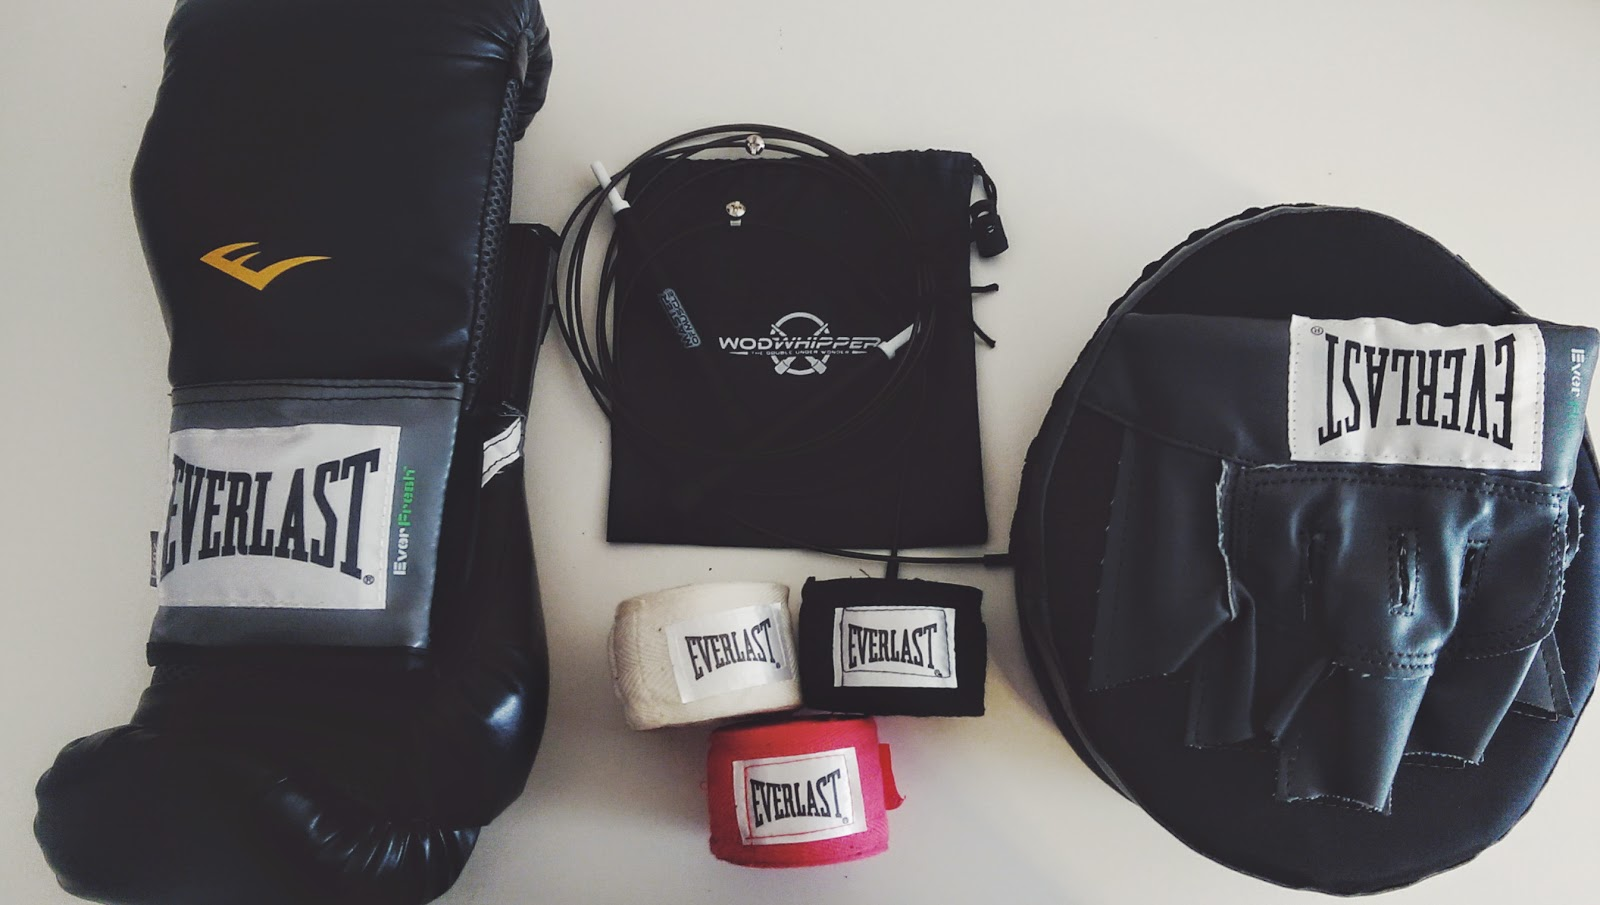 everlast-pro-boxing-gloves, everlast-hand wraps, everlast punch mitts, everlast boxing, everlast